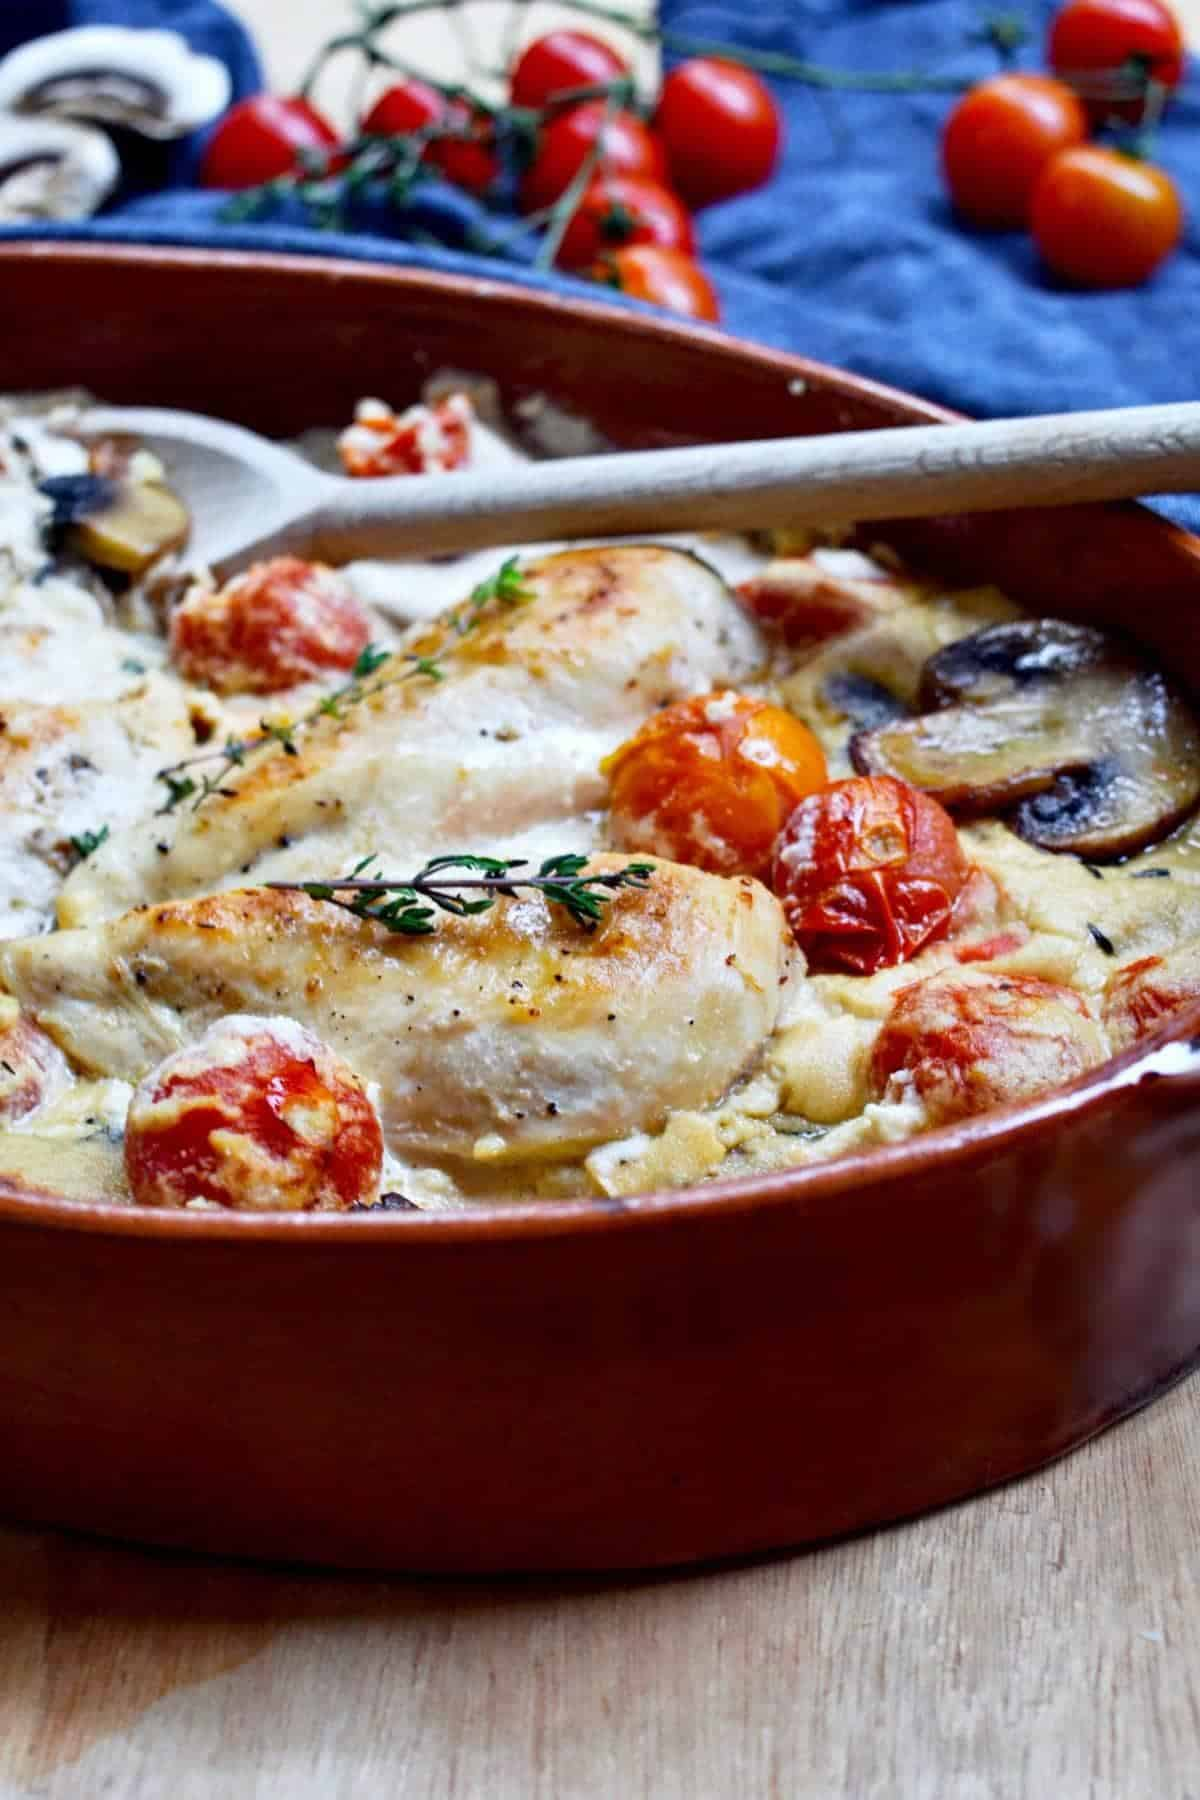 chicken in creamy sauce with tomatoes and mushrooms. healthy chicken dinner